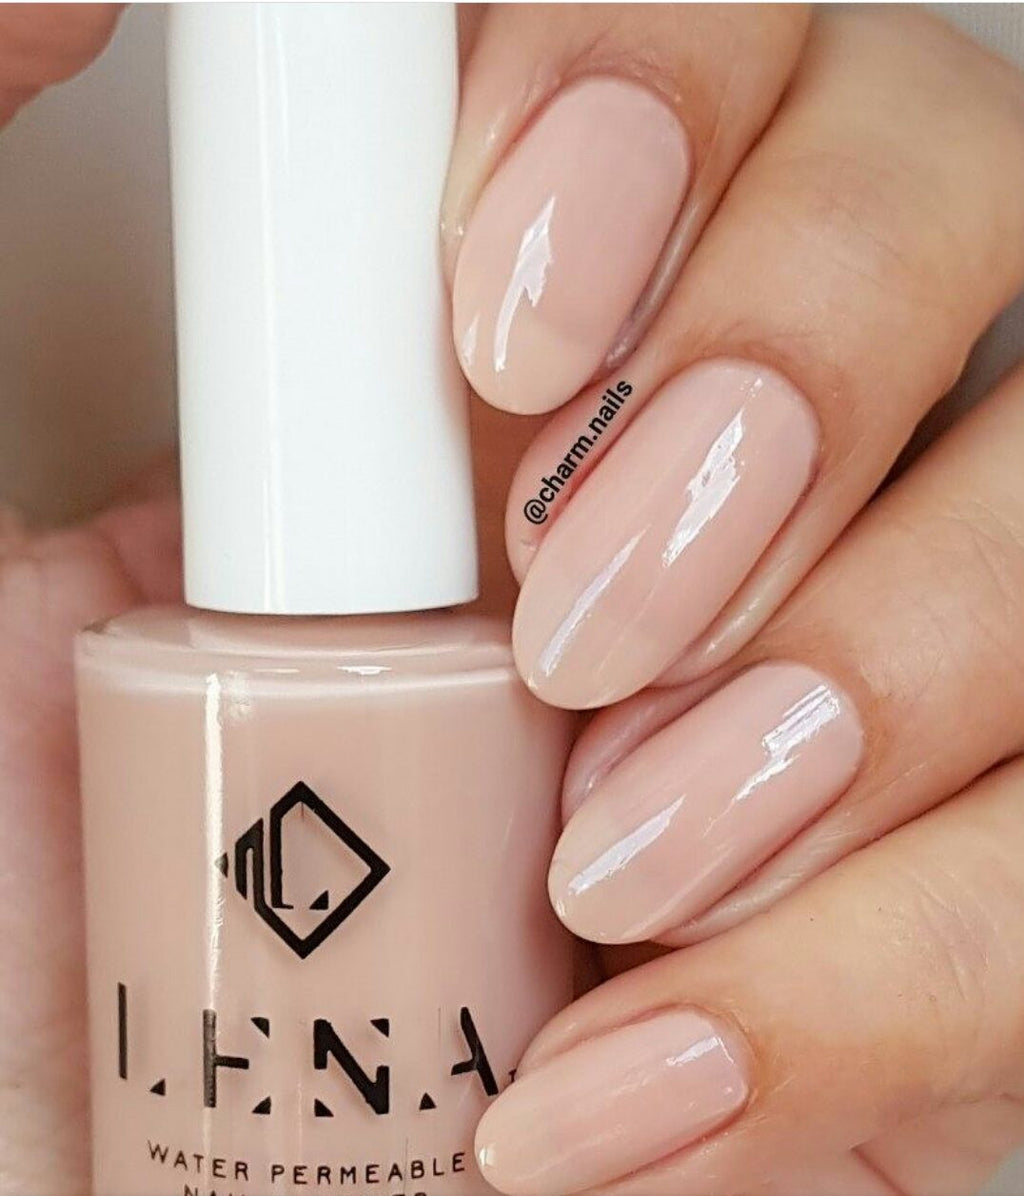 LENA - Breathable Halal Nail Polish - Flawless Make Up - LE90